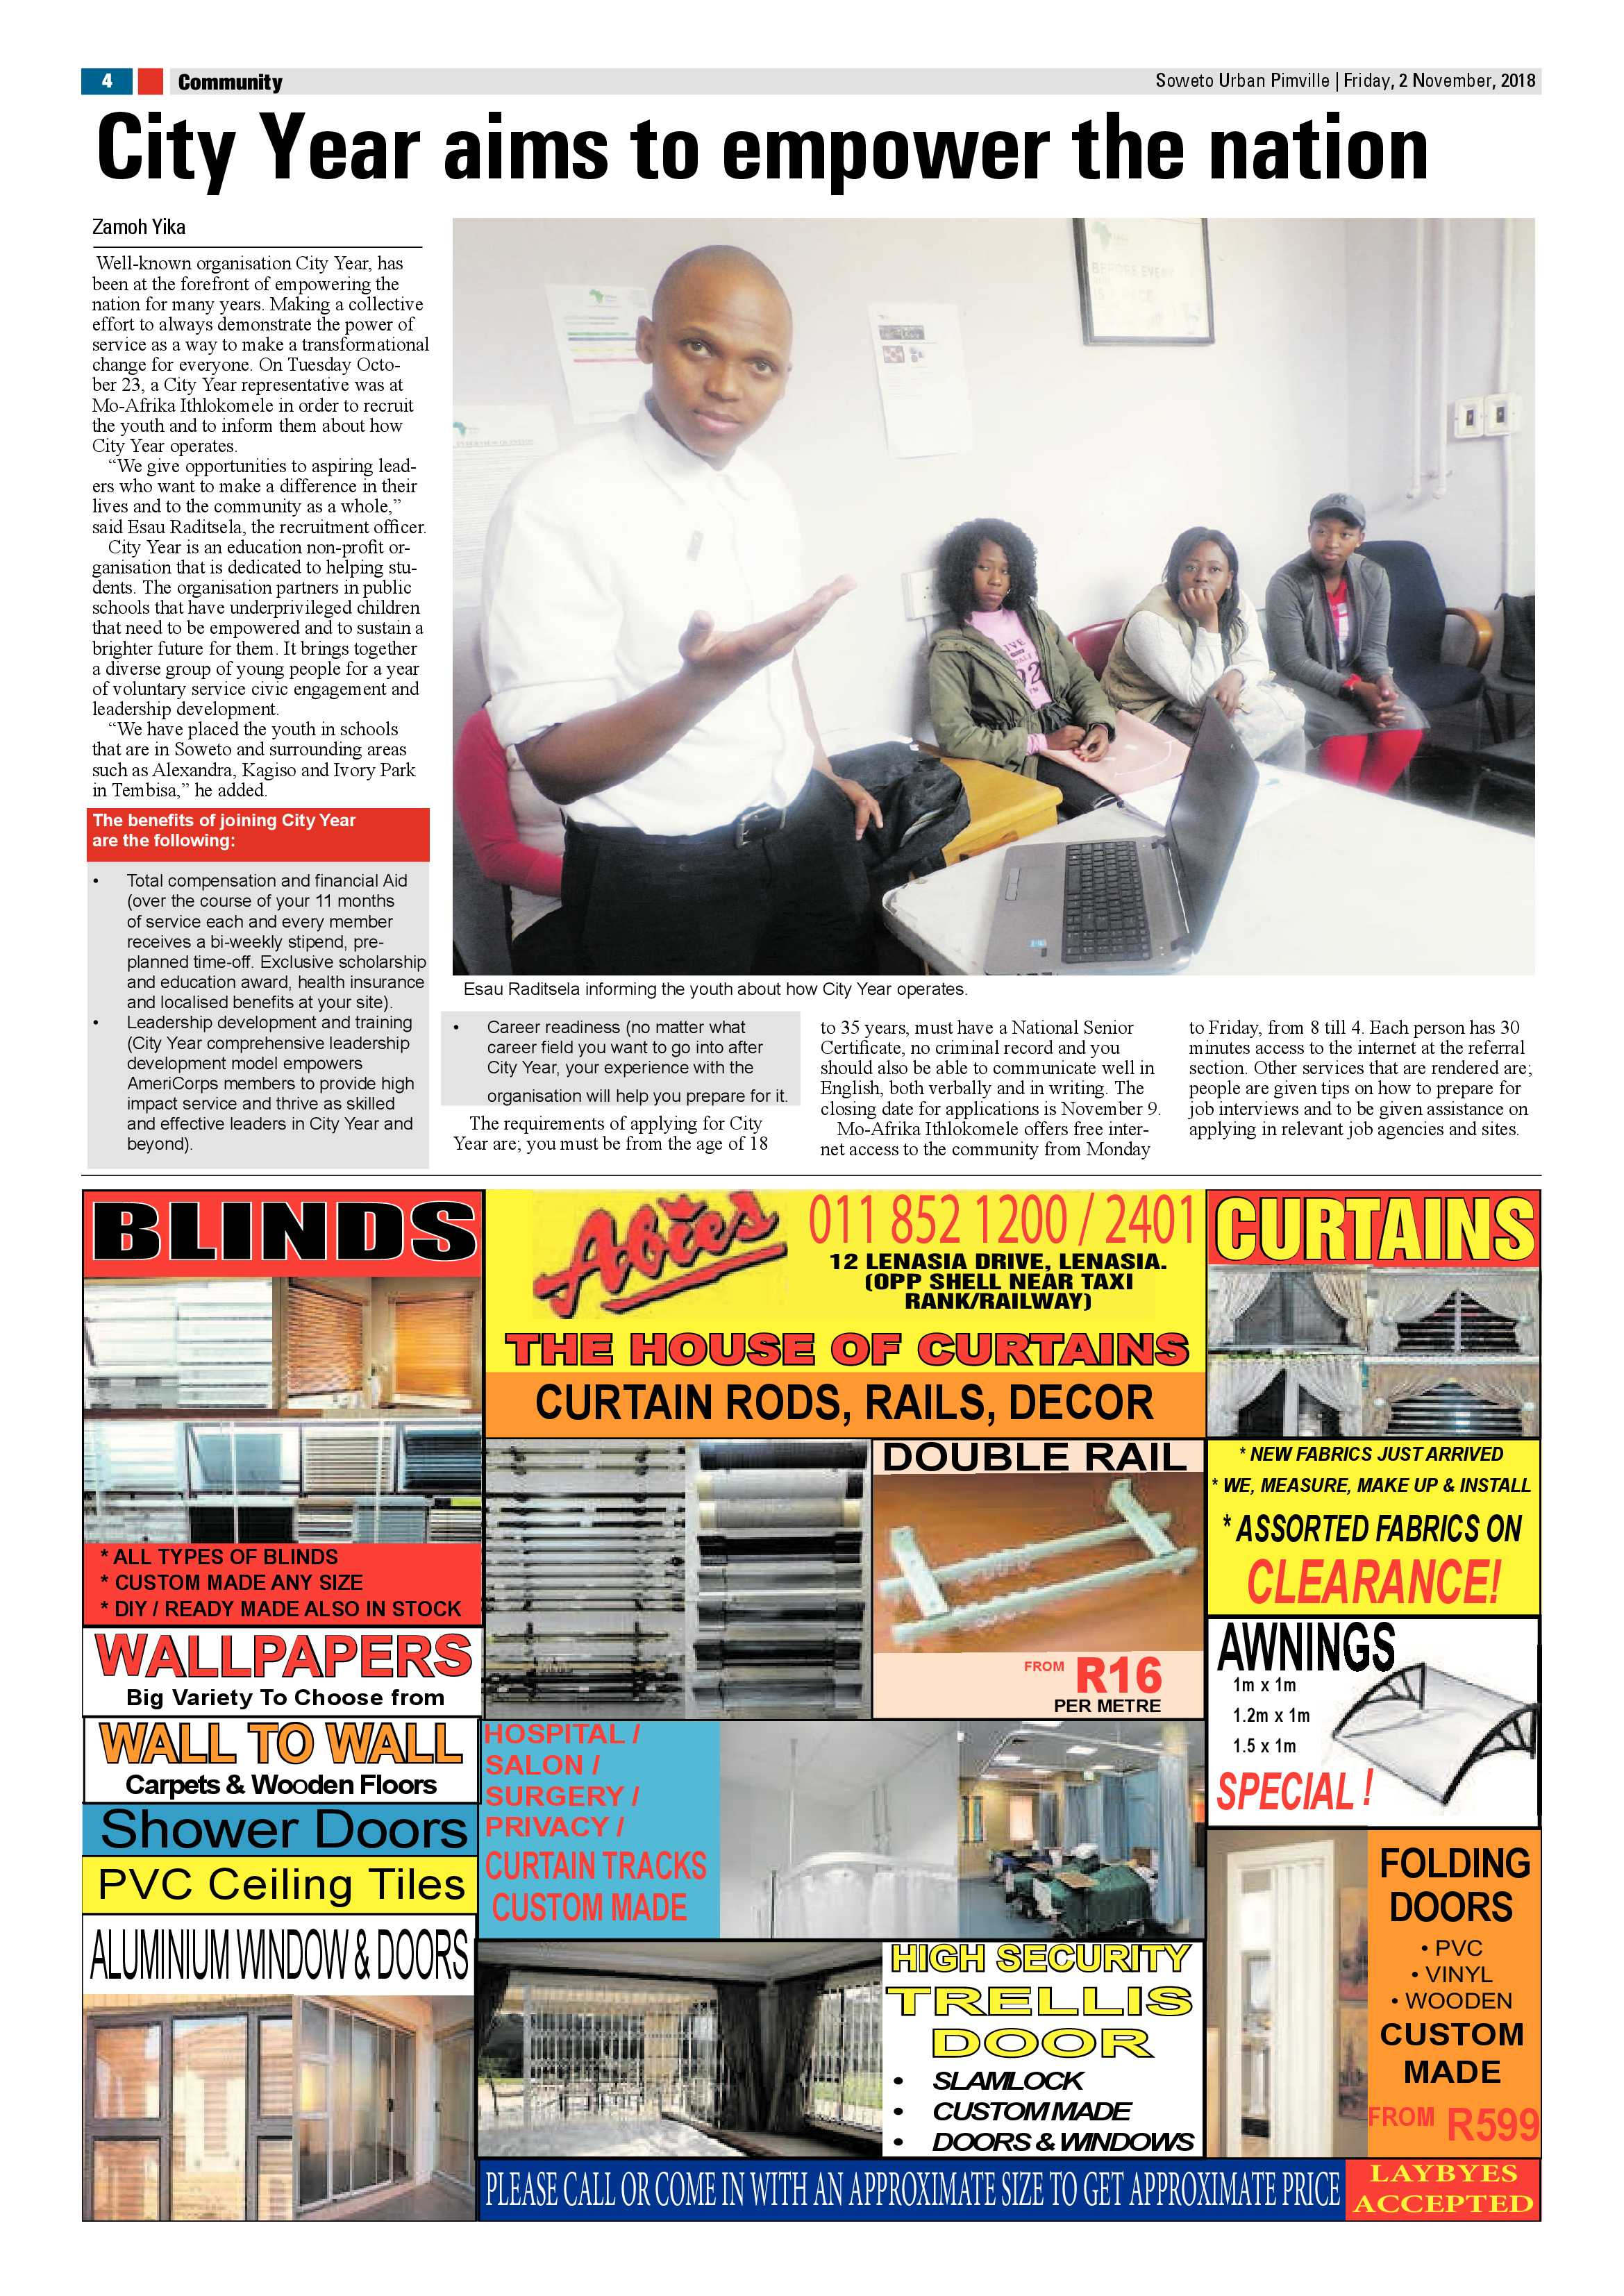 pimville-november-2-2018-issue-epapers-page-4